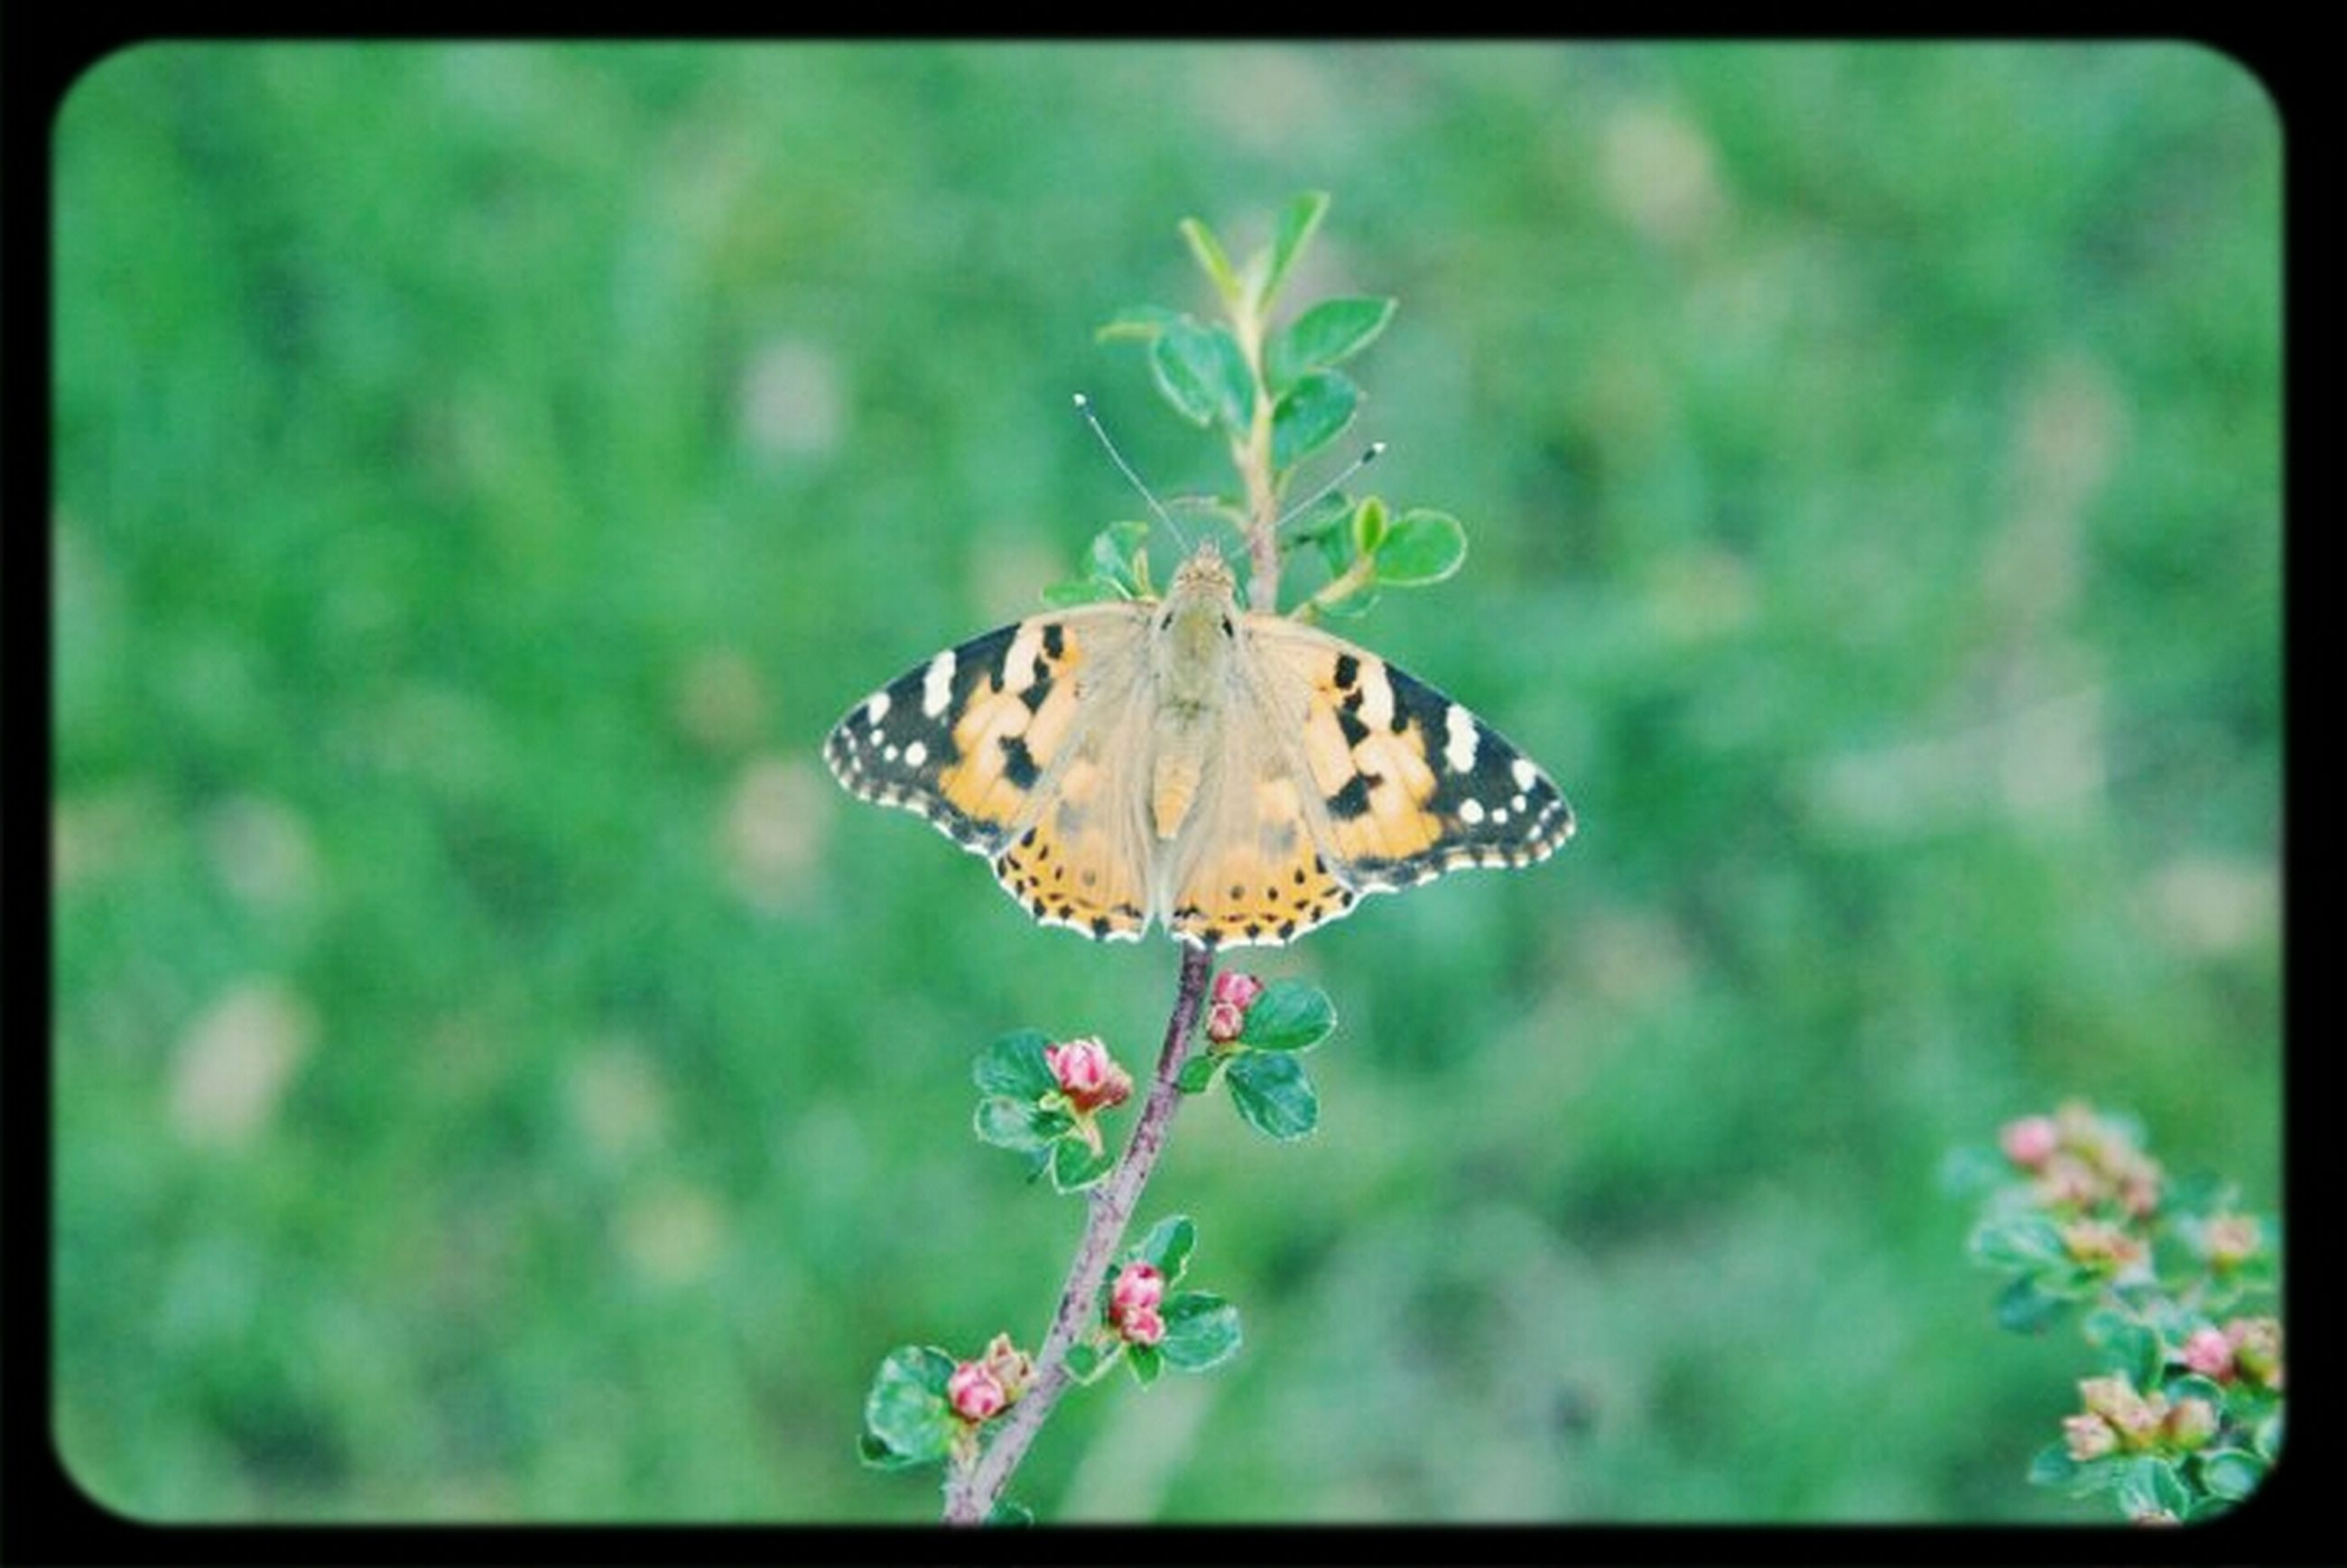 flower, one animal, animal themes, animals in the wild, insect, wildlife, butterfly - insect, butterfly, fragility, transfer print, focus on foreground, plant, freshness, beauty in nature, growth, close-up, nature, pollination, auto post production filter, animal markings